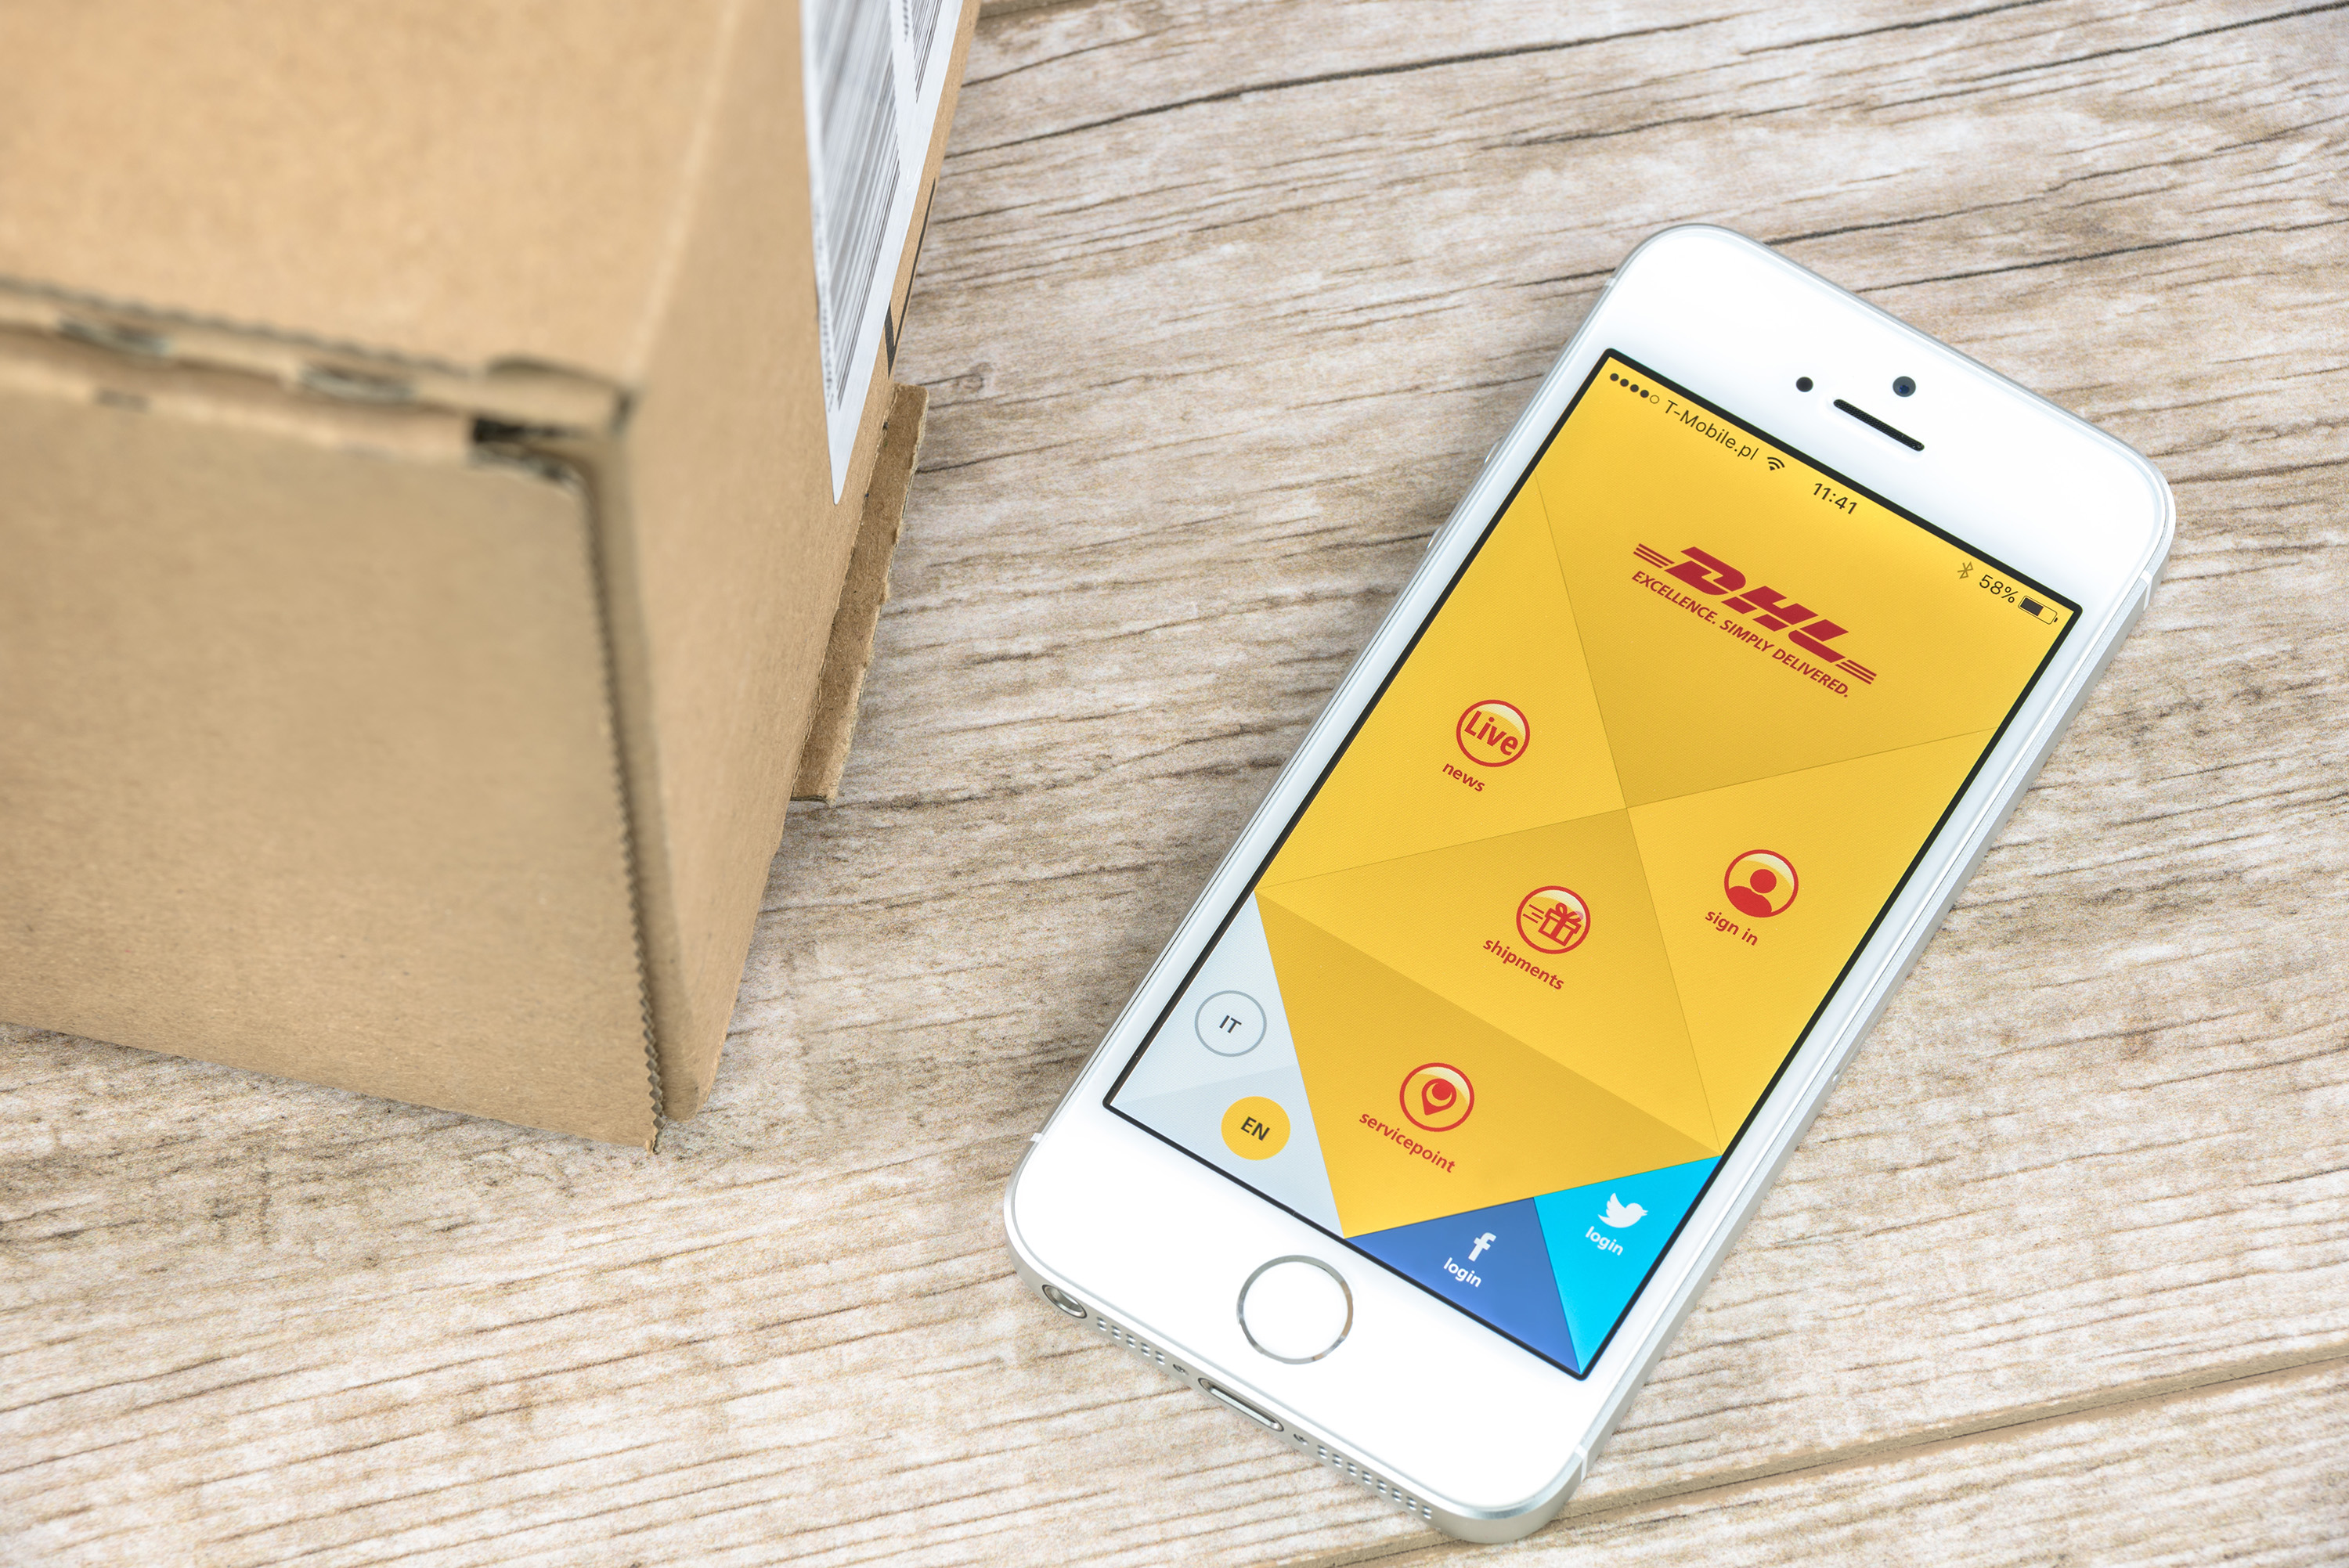 DHL aims to change the face of logistics industry in the GCC